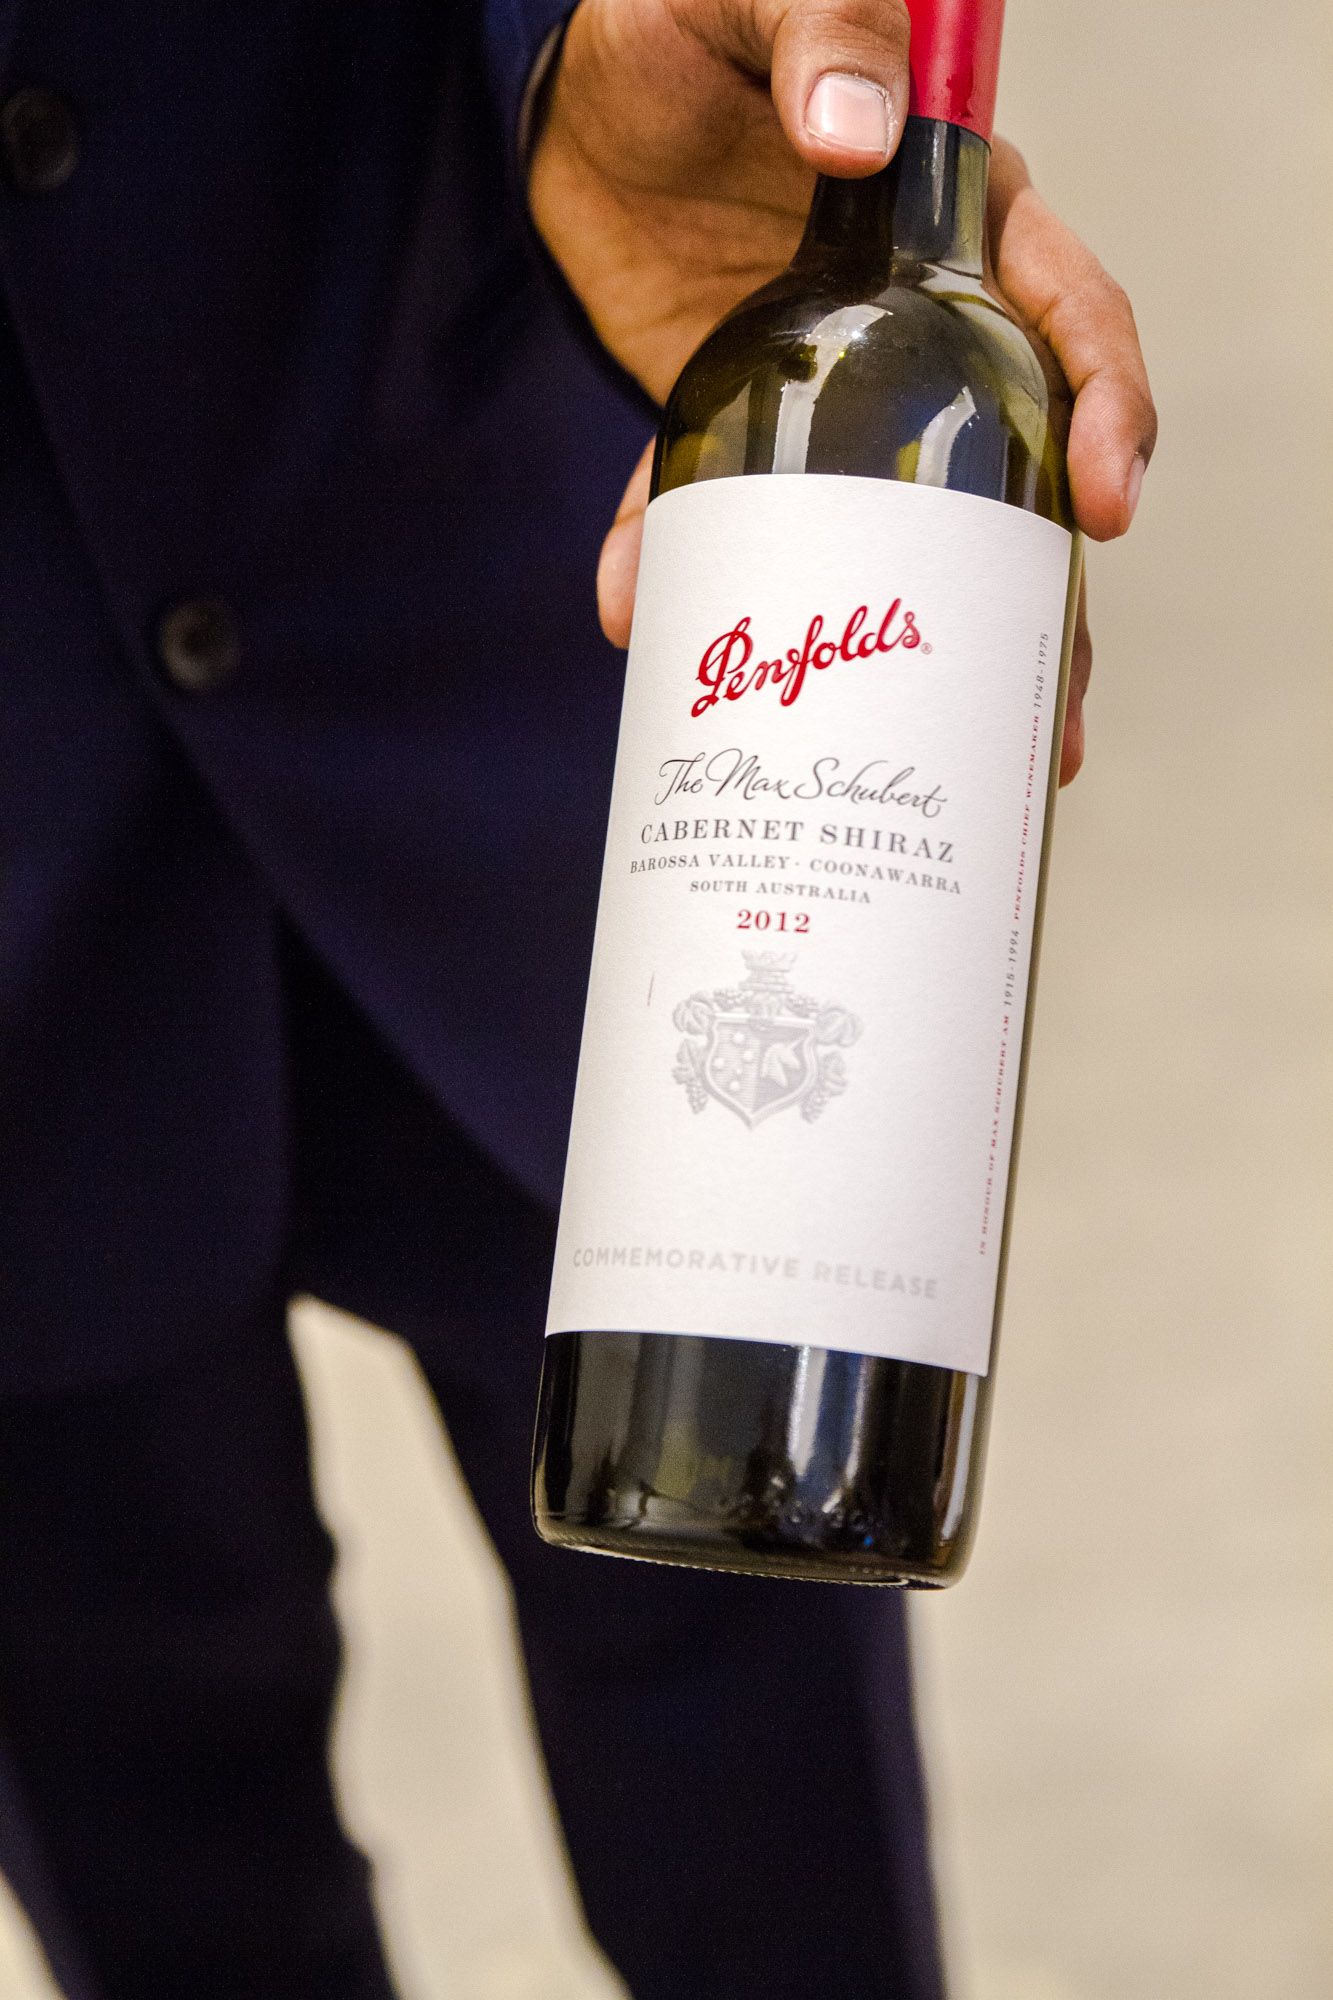 penfolds-output-22